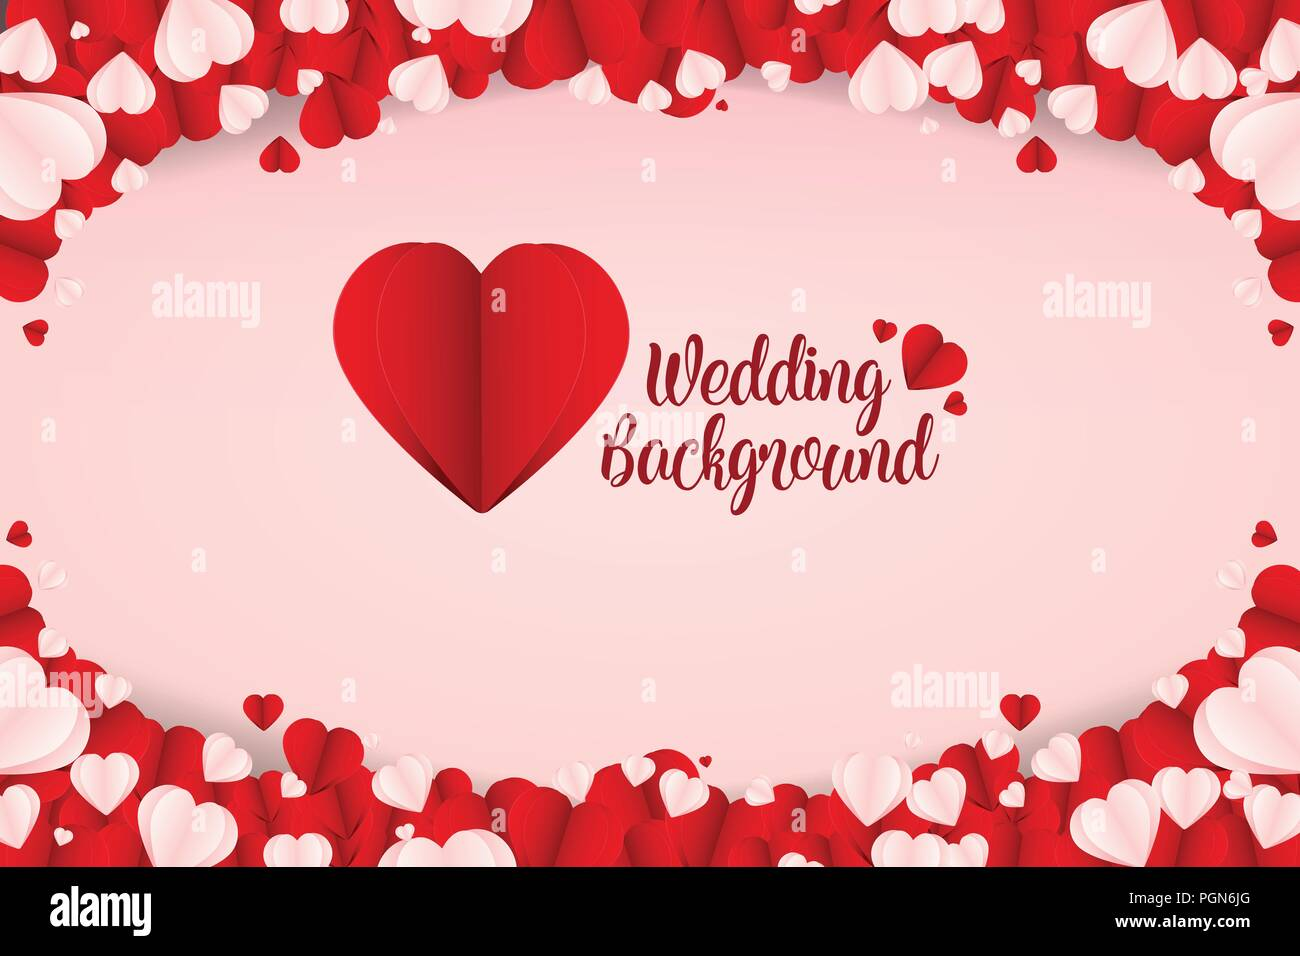 Beautiful Abstract Paper Art Heart Wedding Background Vector - Stock Image